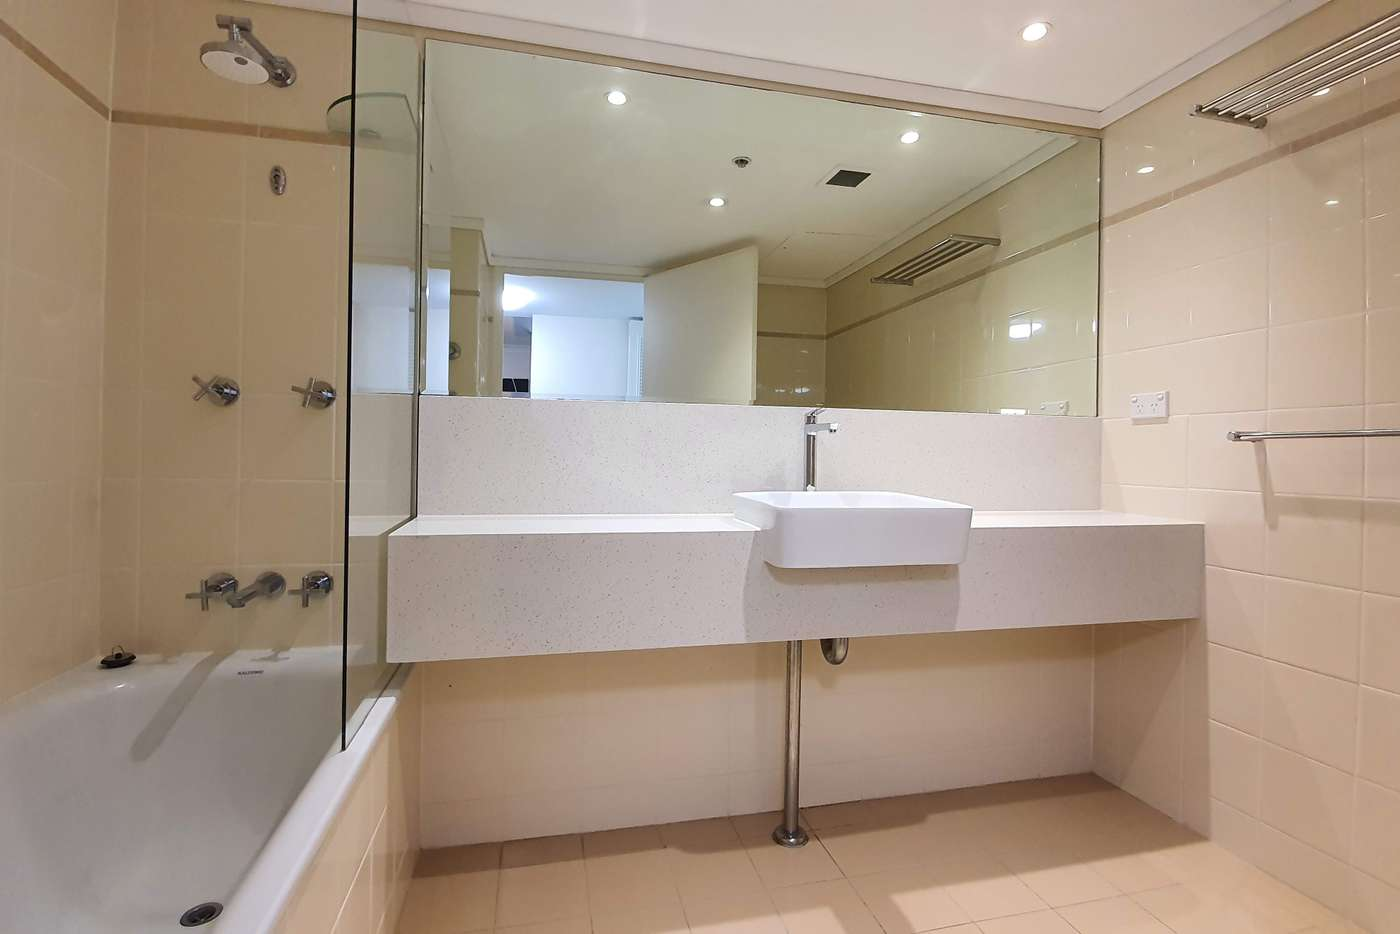 Sixth view of Homely apartment listing, 617/10 Brown Street, Chatswood NSW 2067